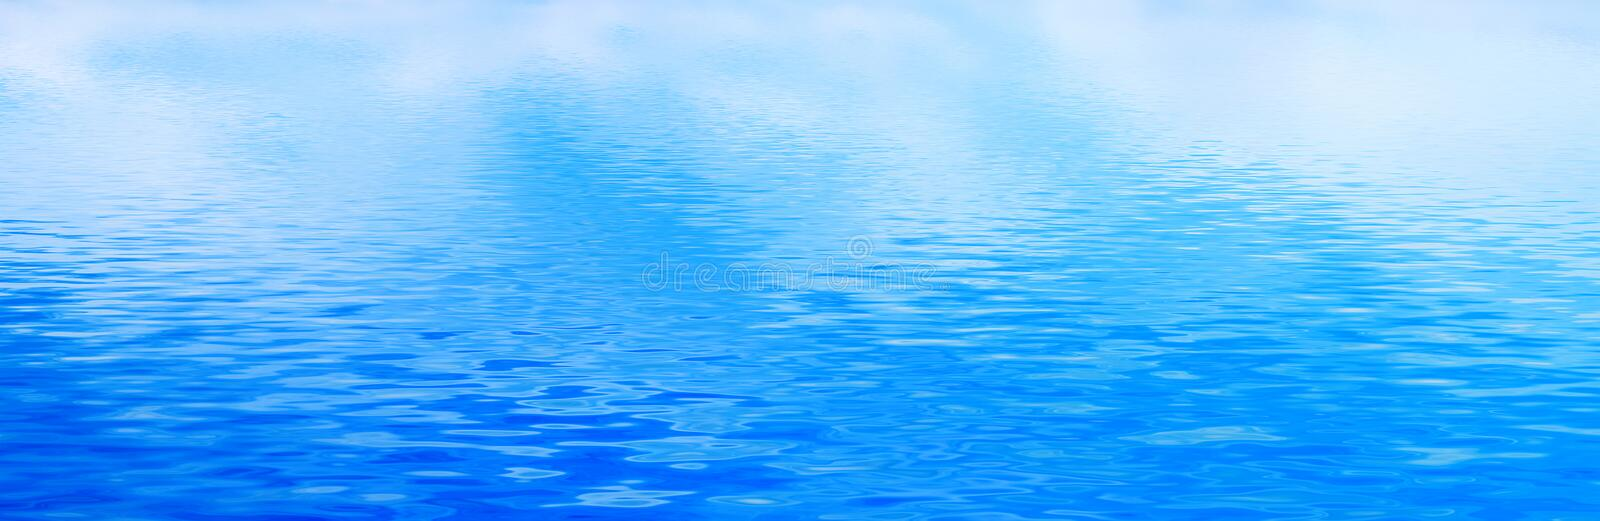 Clean water background, calm waves. Banner, panorama. Clean water background with calm waves. Blue sky reflection. Banner, panorama royalty free stock photos